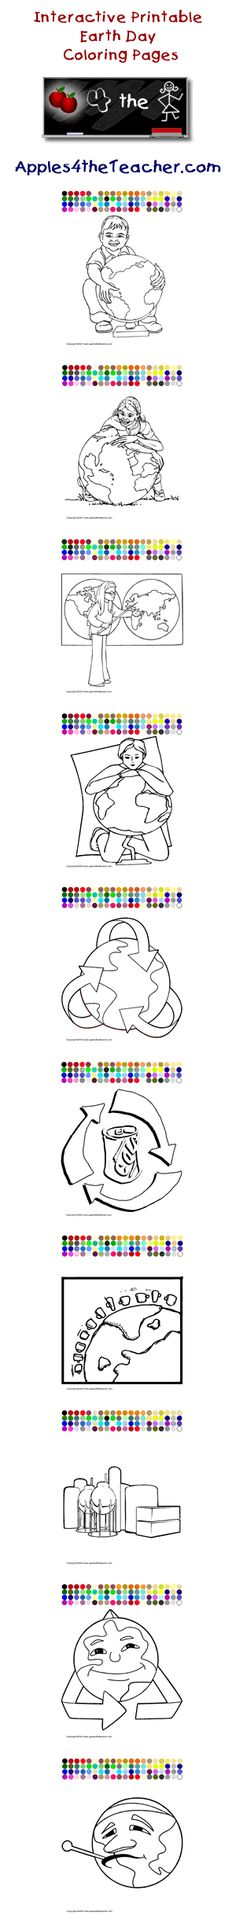 Printable interactive Earth Day coloring pages, Earth Day coloring ...